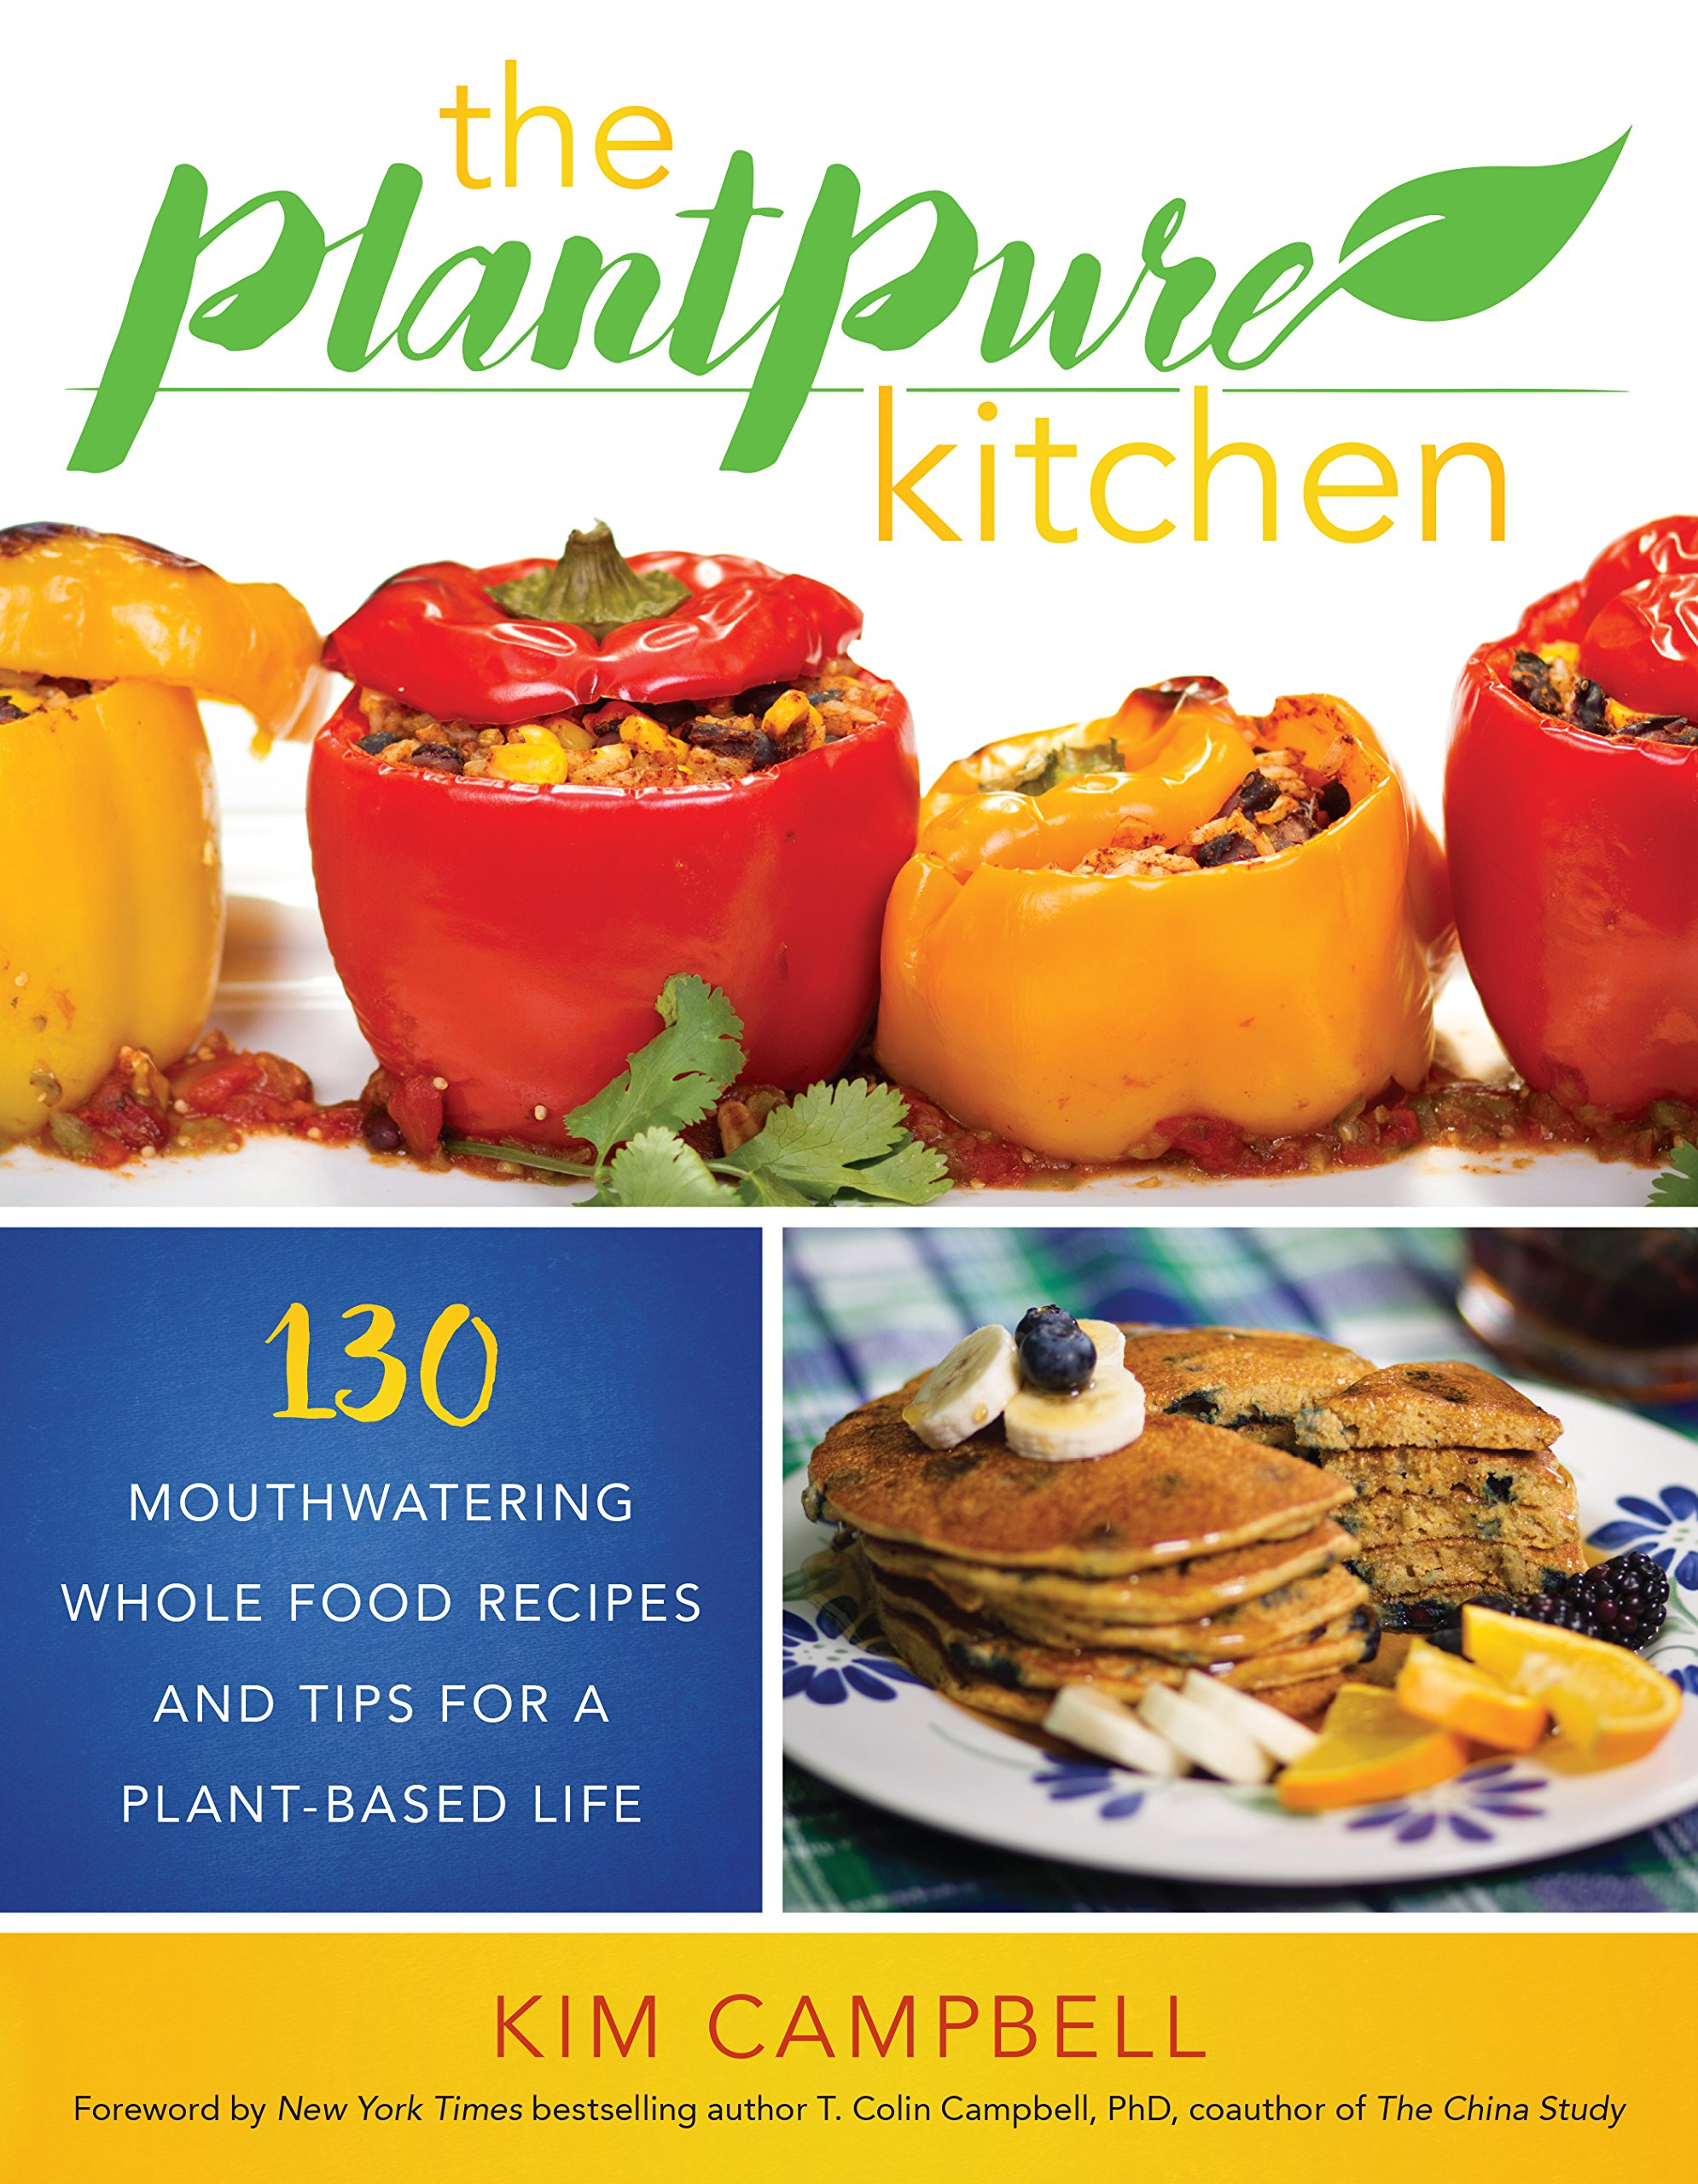 Campbell Kitchen Recipe The Plantpure Kitchen 130 Mouthwatering Whole Food Recipes And